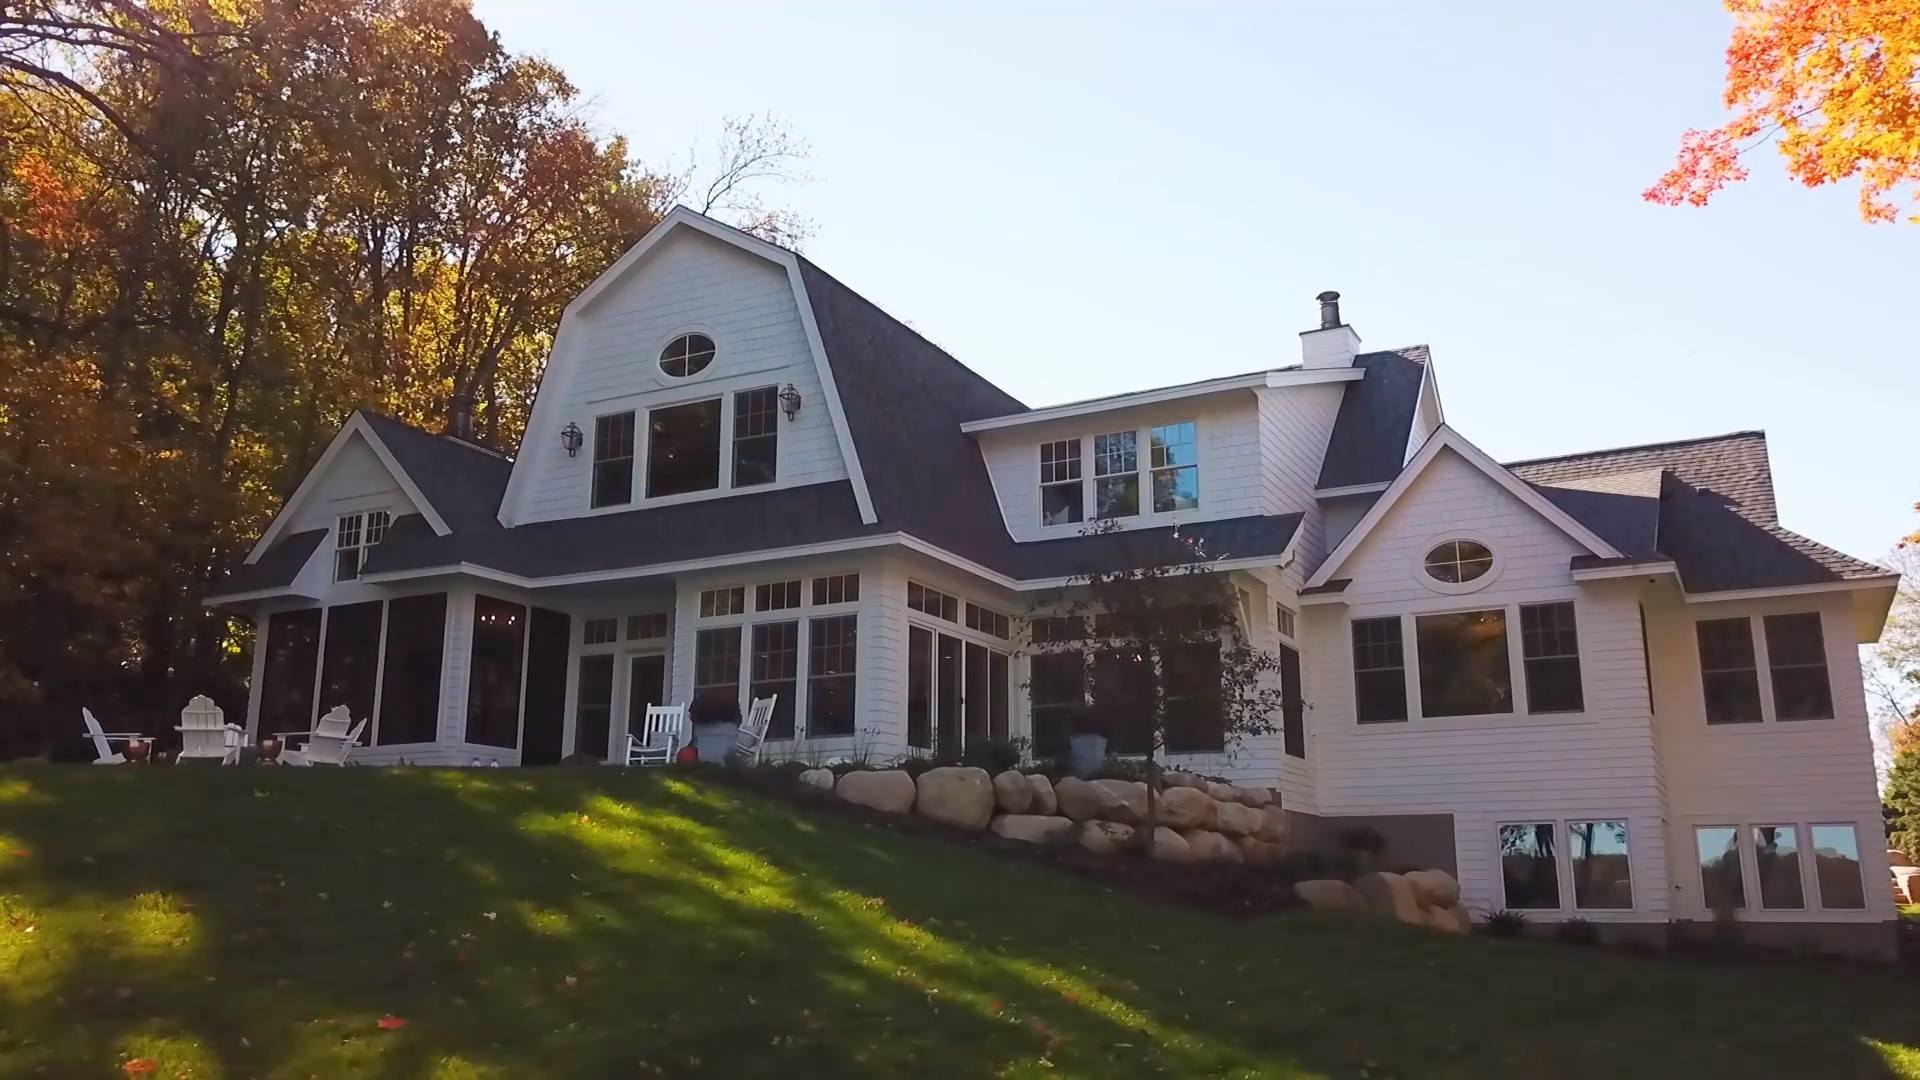 Real Estate Video of 7,000 sq. ft. Custom Home in Orono, MN